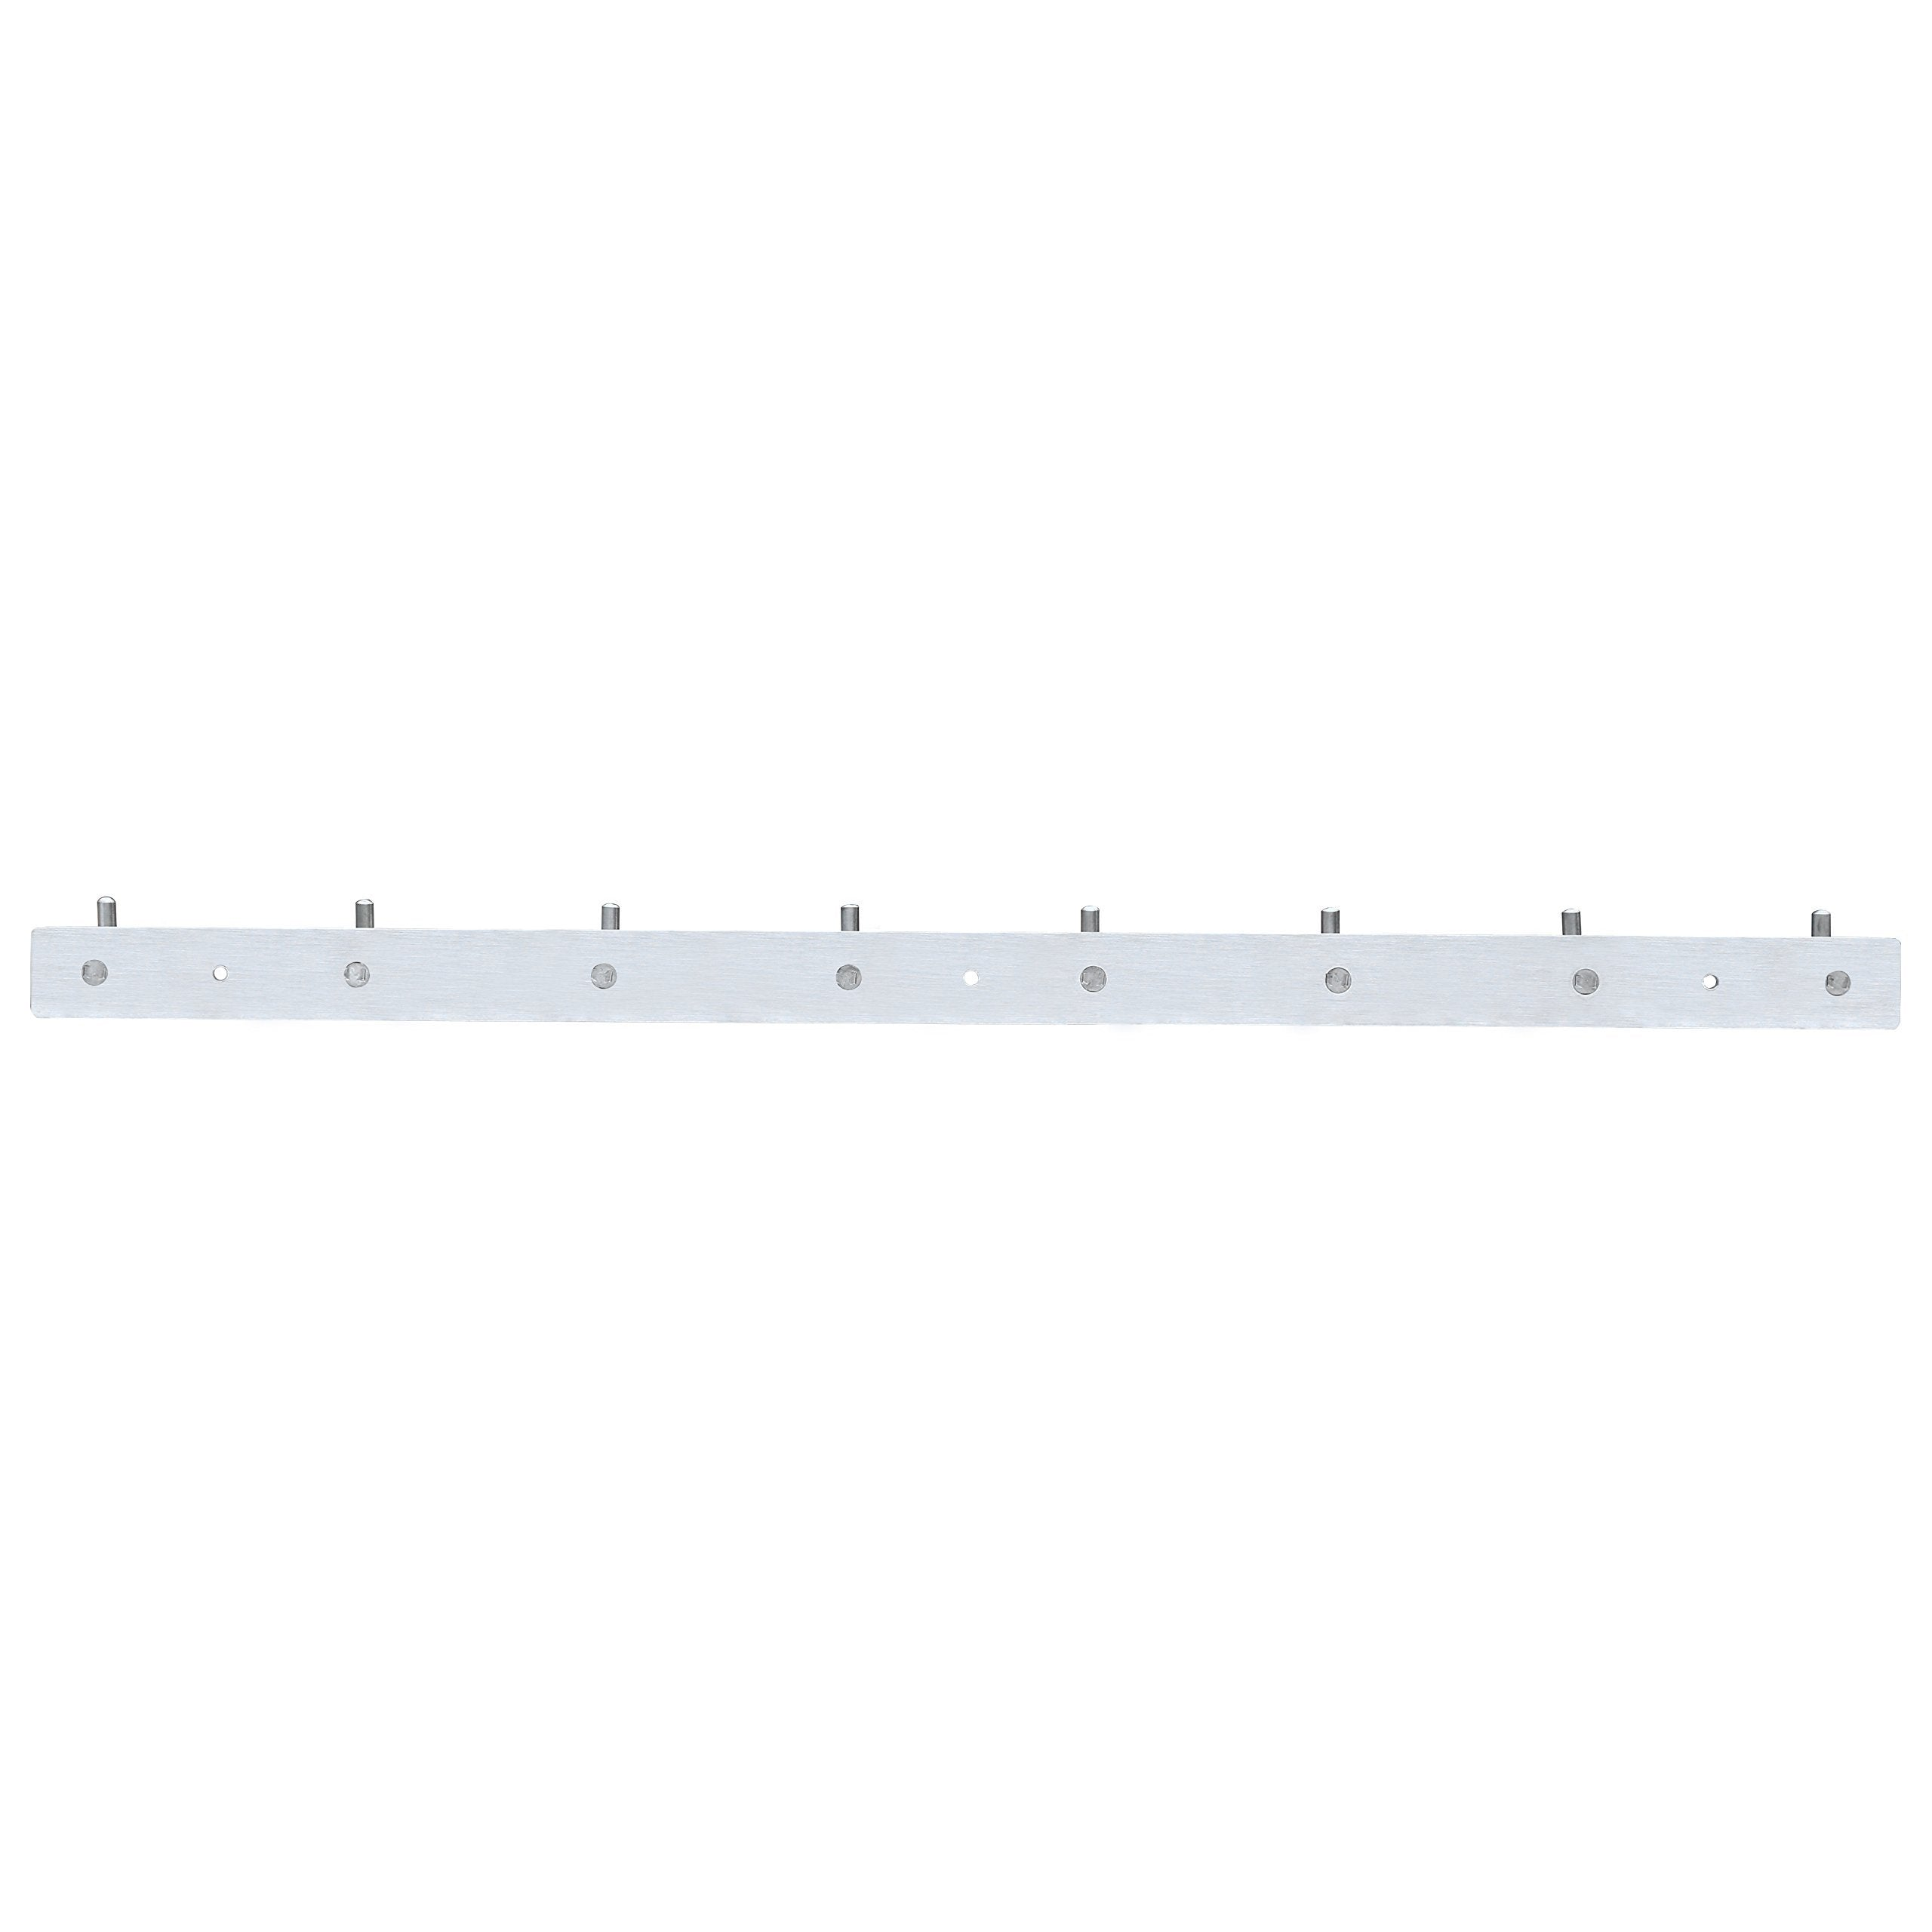 Great stainless steel coat hook webi heavy duty towel rack hanger rail bar for bedroom bathroom fitting room laundry room foyer hallway entryway brushed finish 8 hooks l cf08